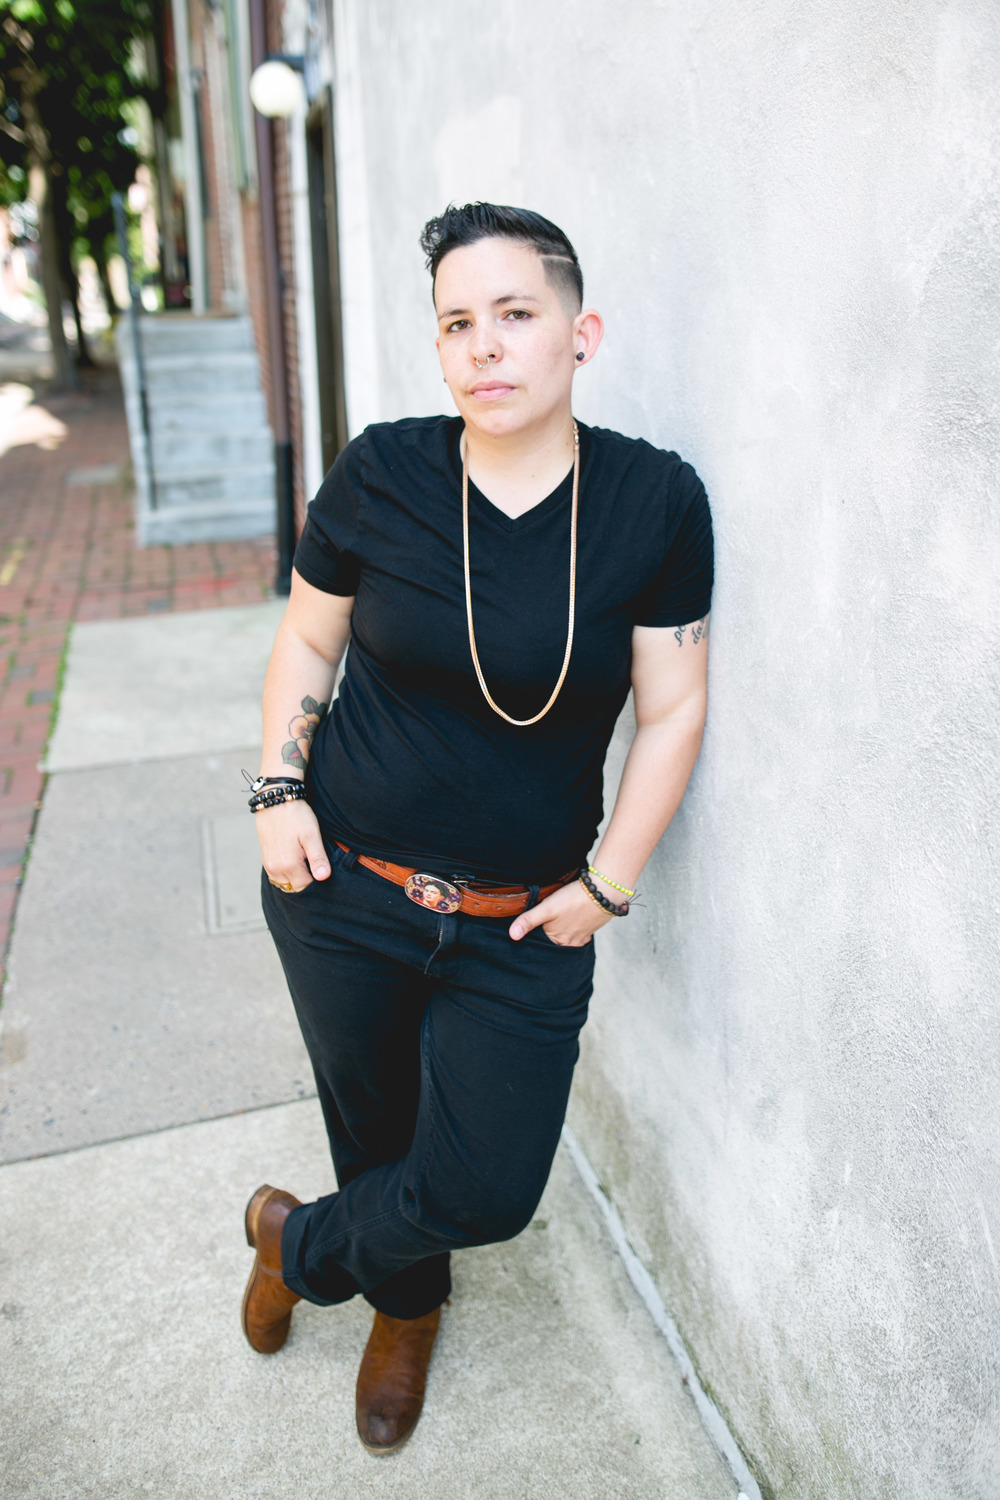 Philadelphia Weekly Forward Philly Headshots by LGBTQ photographer, Queer DJ Nikki Lopez